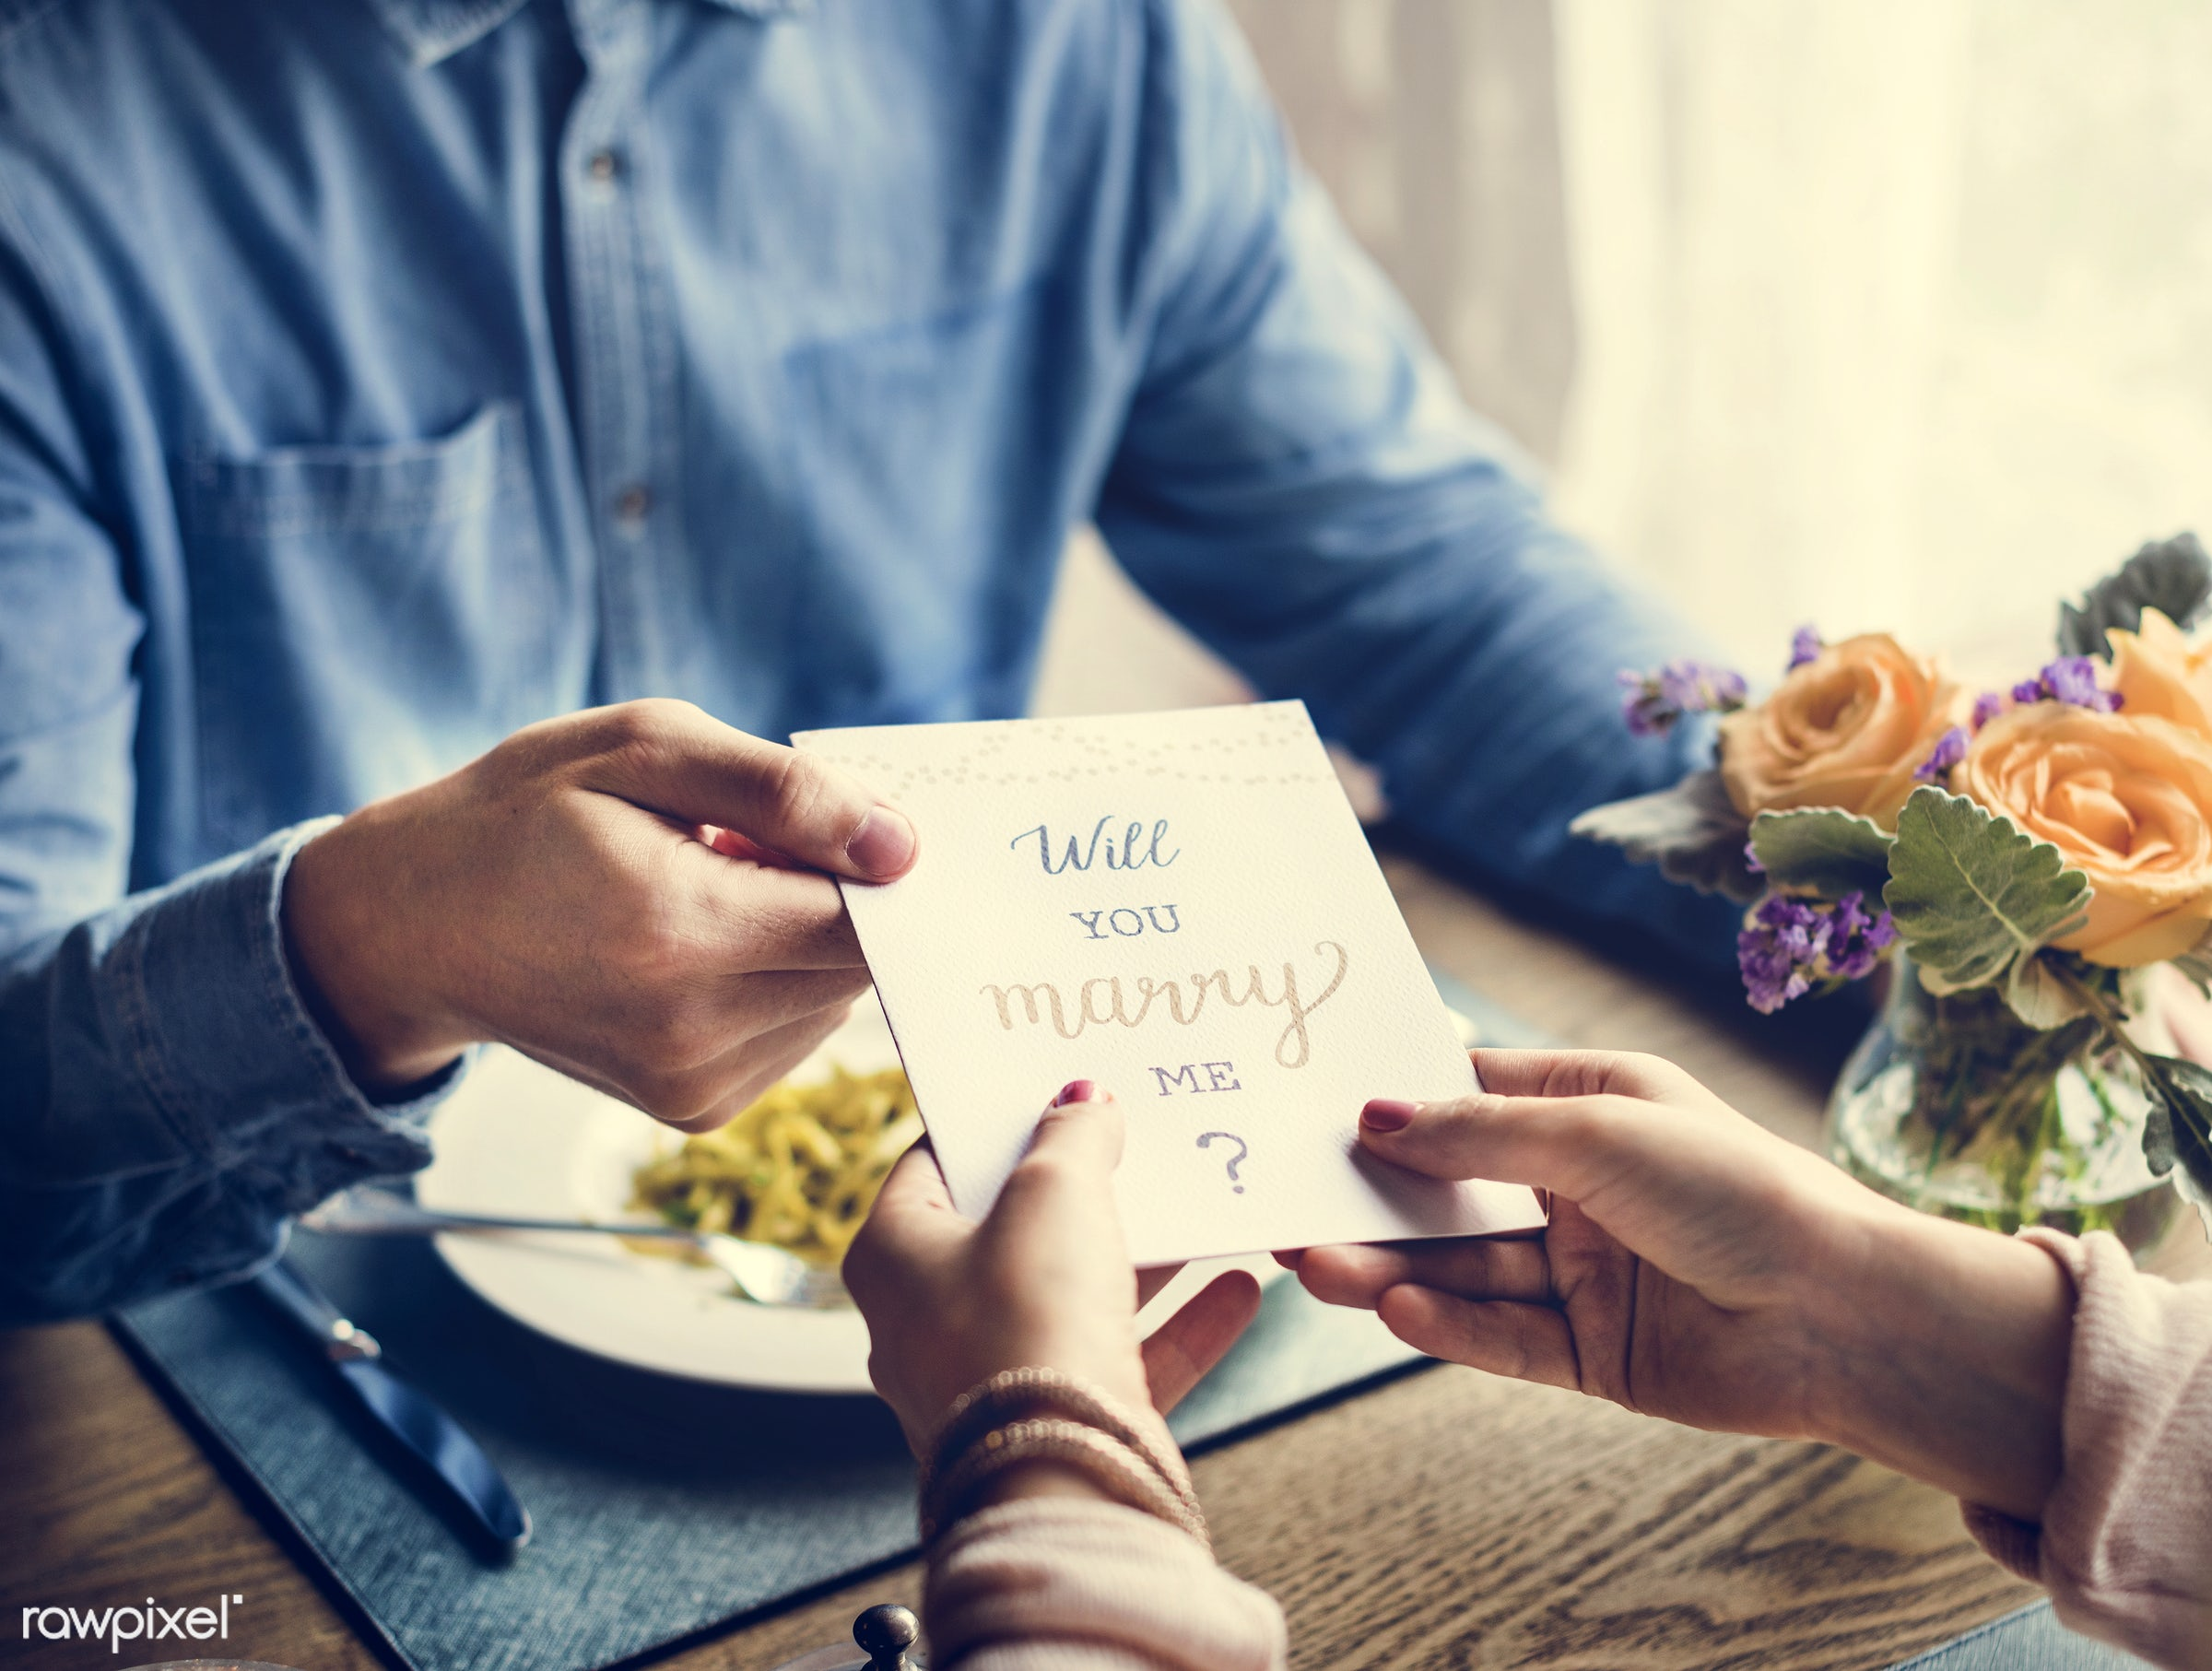 expression, person, people, together, love, woman, gather, drink, card, lunch, cheerful, flower, marry, asking, hold,...